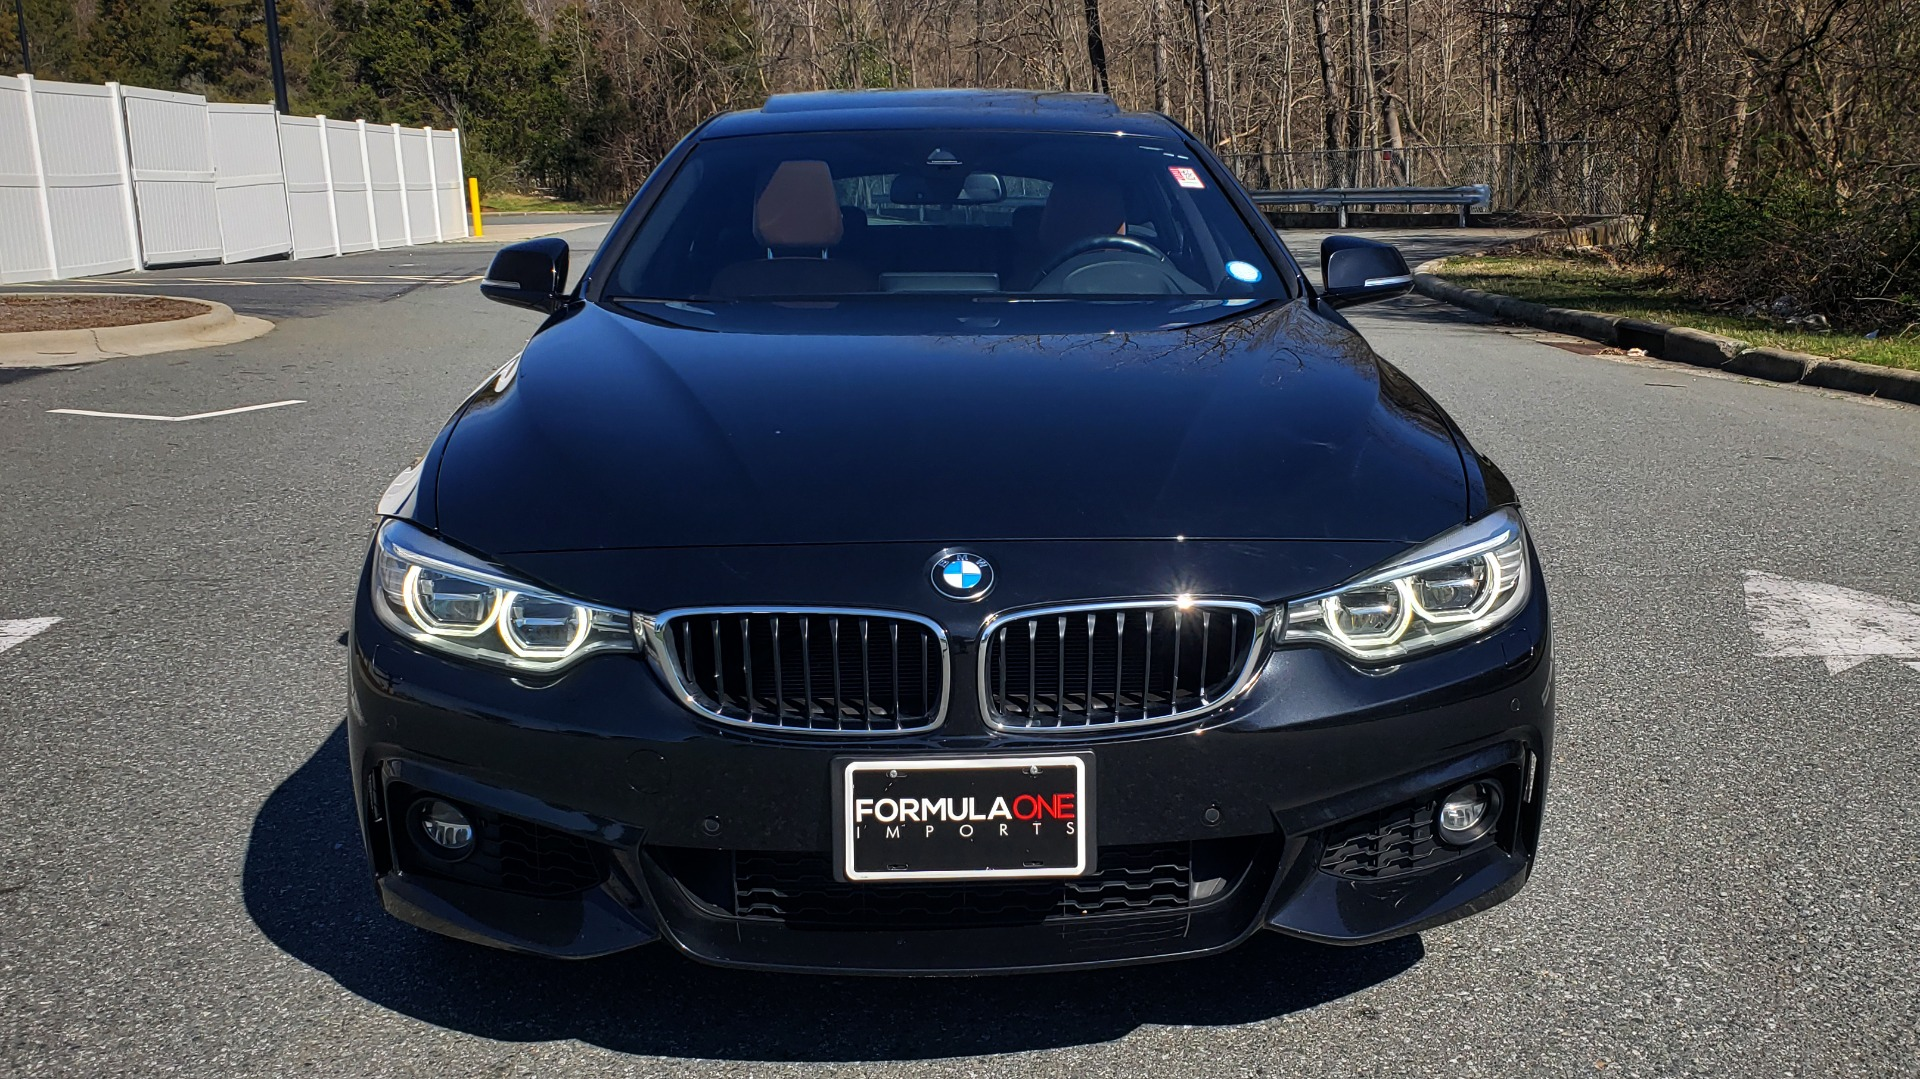 Used 2017 BMW 4 SERIES 440i XDRIVE M-SPORT / TECH / CLD WTHR / DRVR ASST PLUS / LIGHTING for sale Sold at Formula Imports in Charlotte NC 28227 23